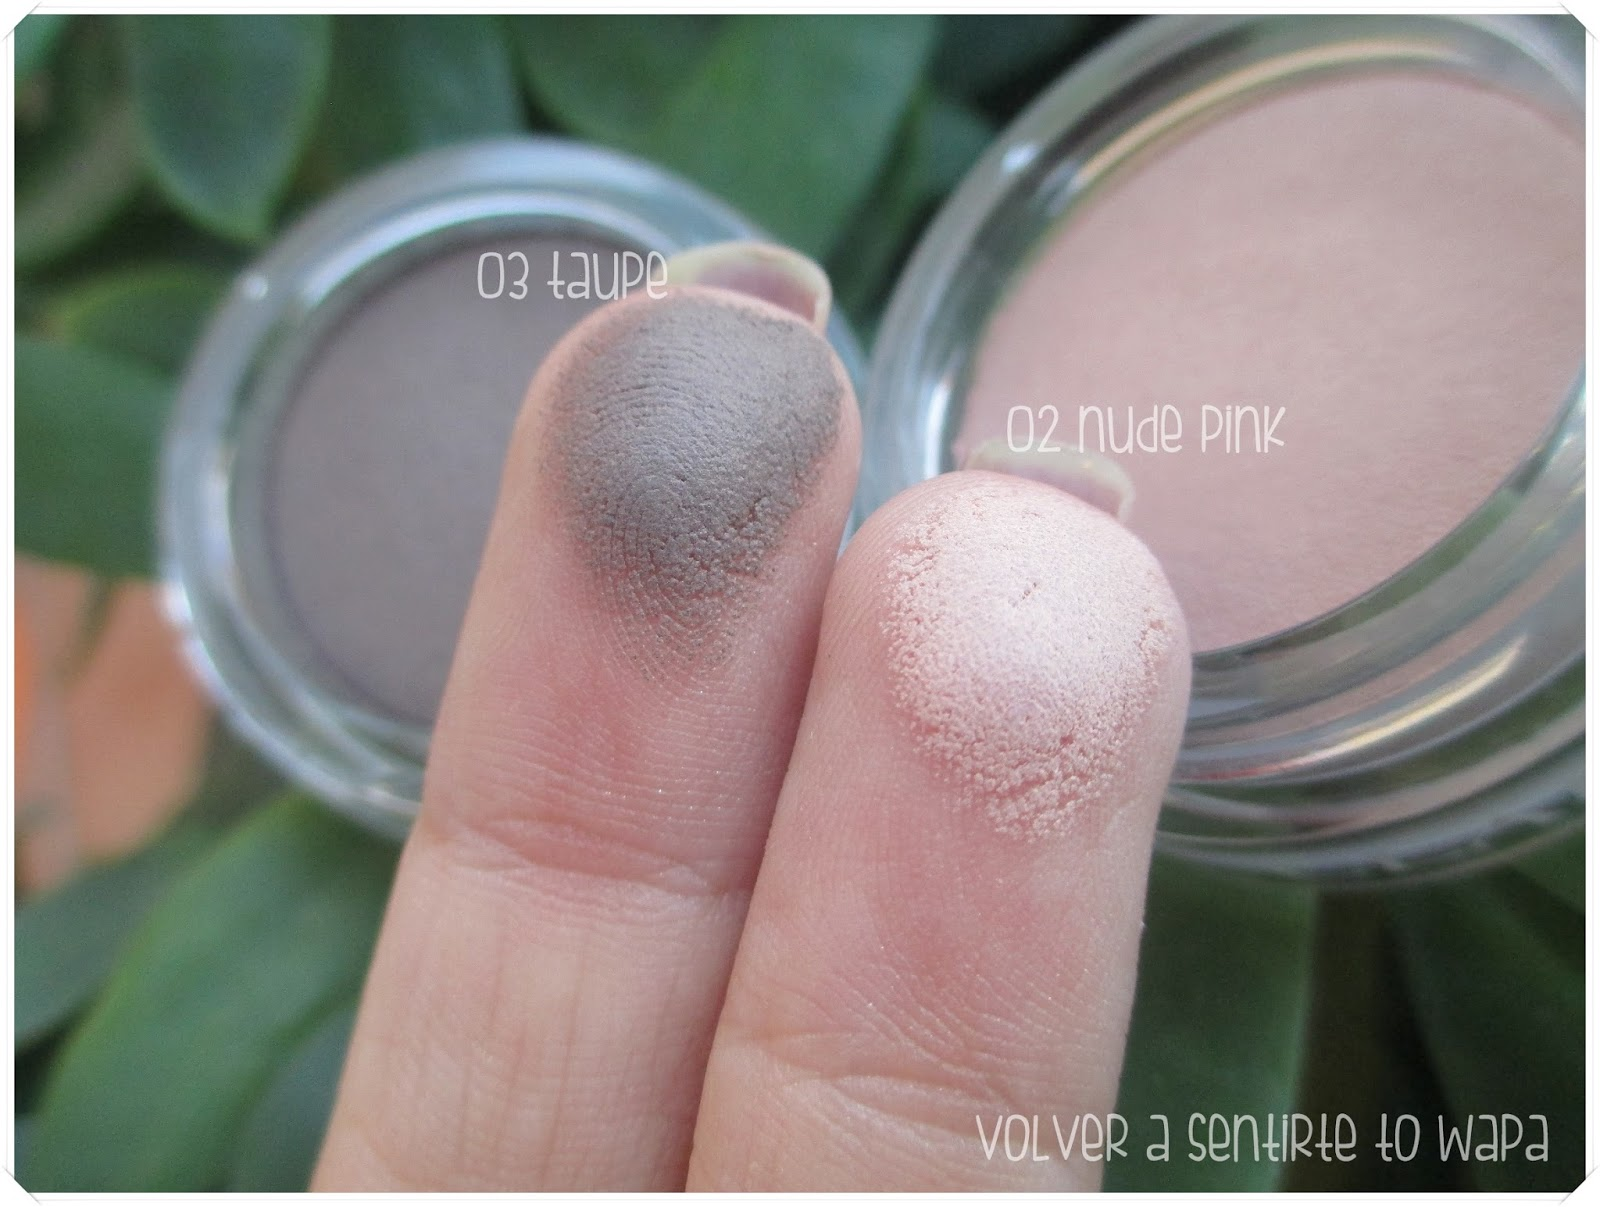 Ombre Matte de Clarins - 02 nude pink y 03 taupe